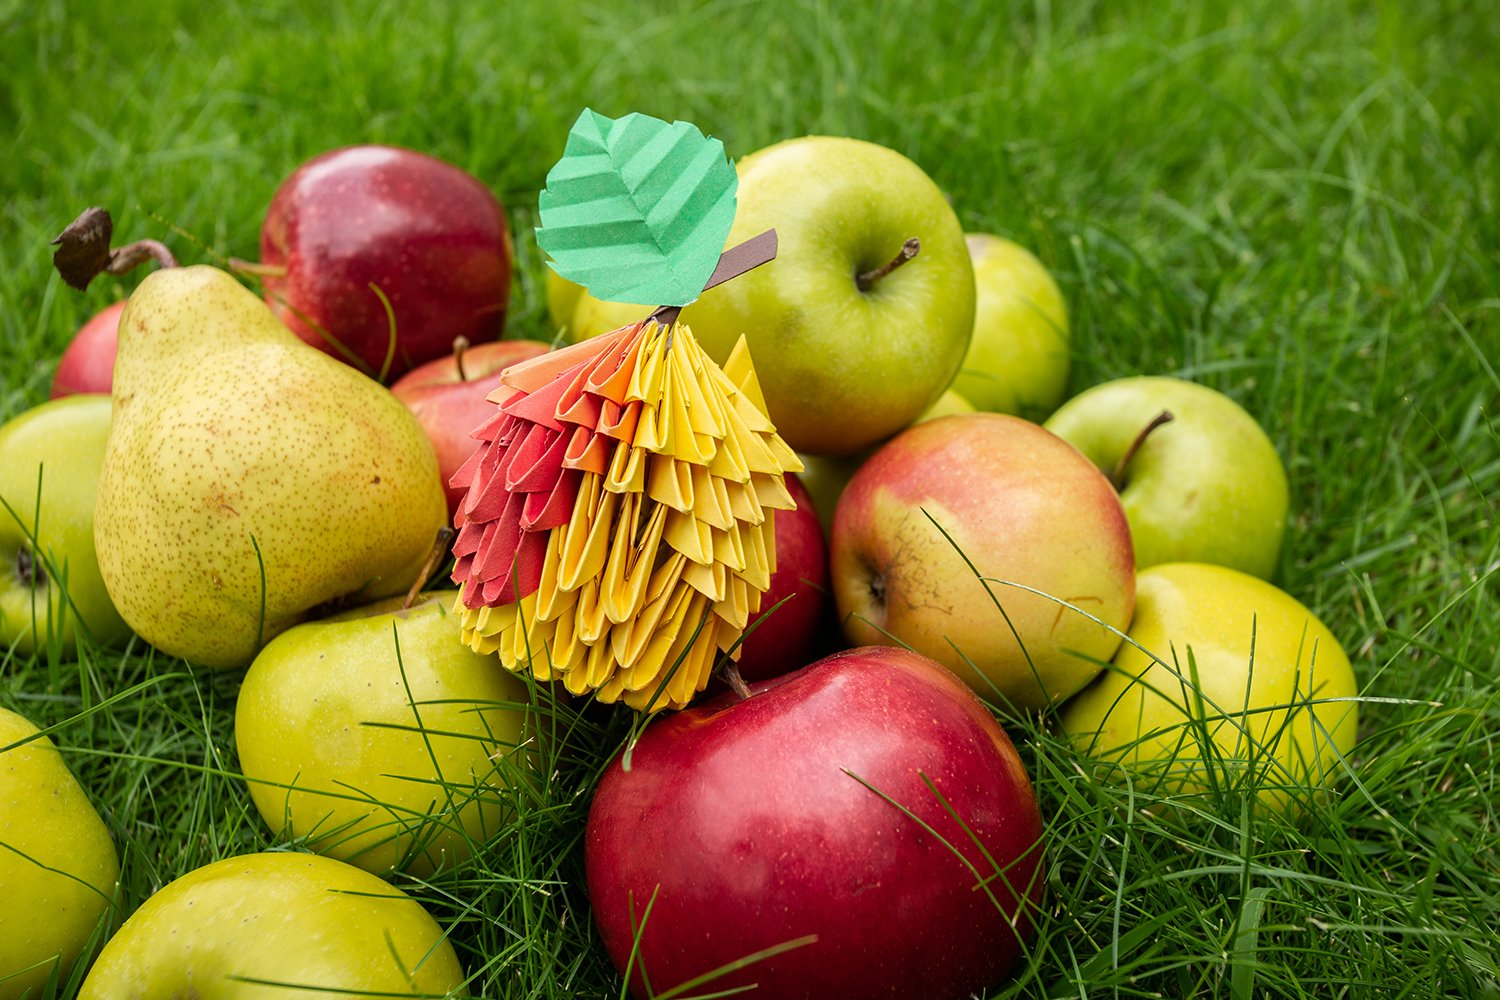 Autumn Apple harvest background wicker basket on green grass example image 1